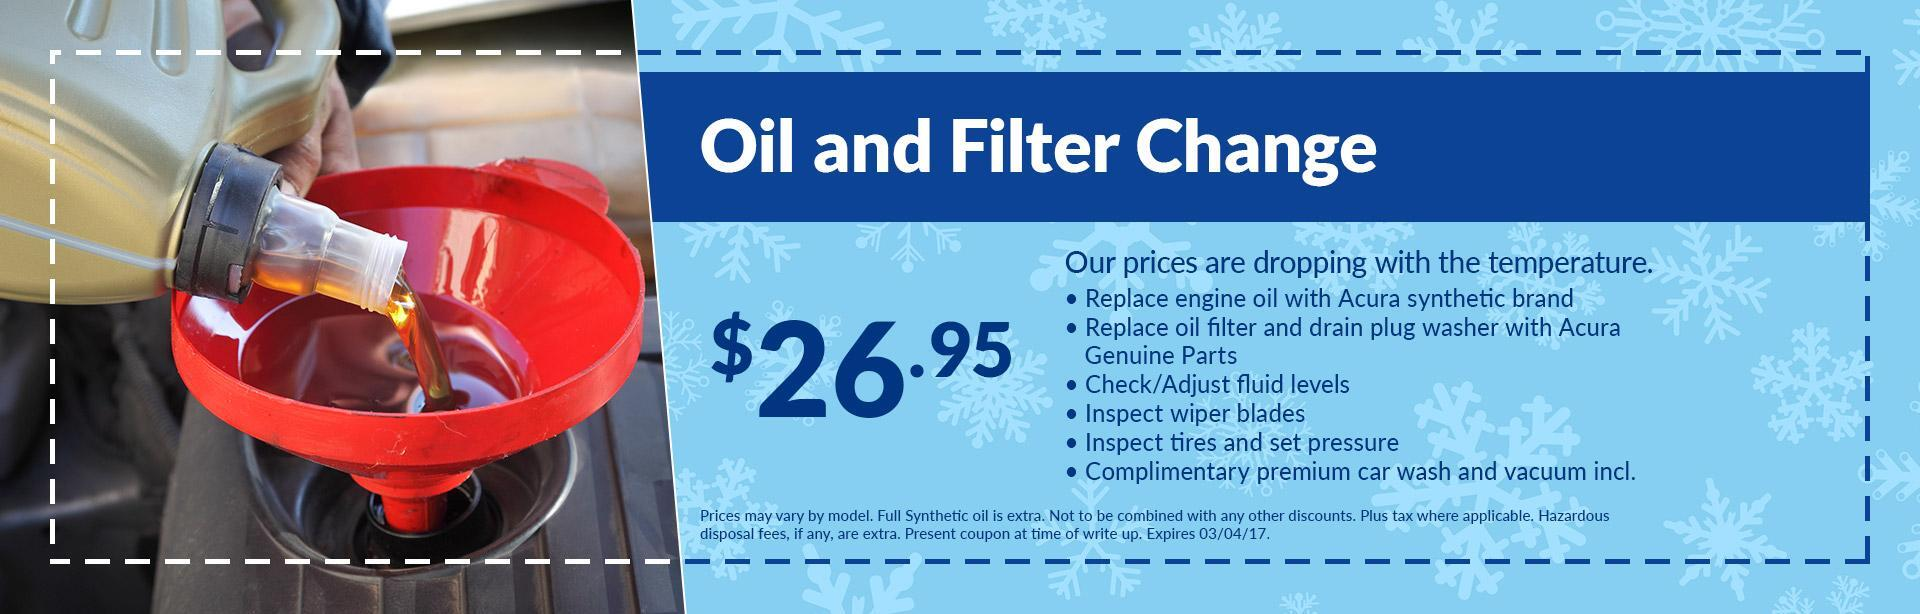 Acura coupon oil change